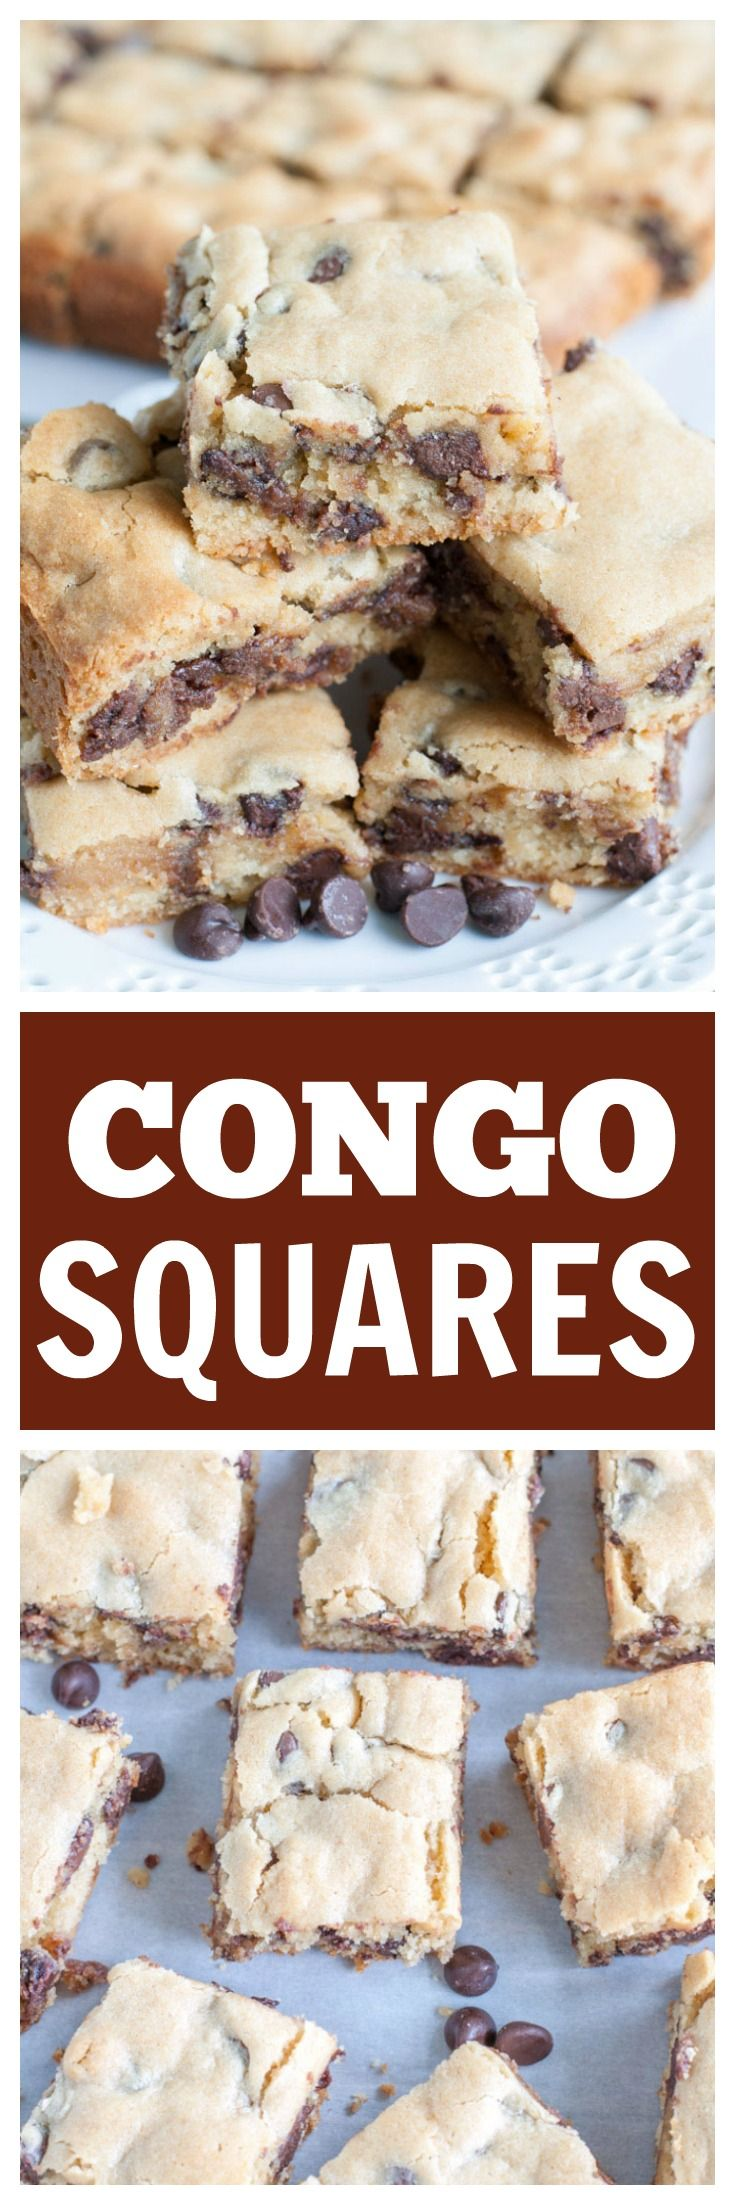 Congo Squares are cookie bars filled with chocolate chips. They are soft, chewy and a staple dessert in our family.|Congo Bars|Congo Squares| Chocolate Chip Cookie